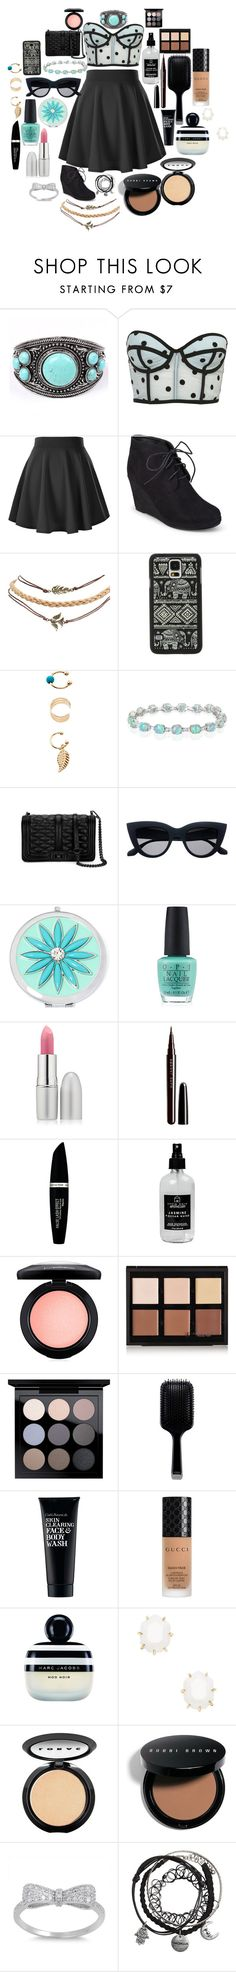 """""""MAKIN MY WAY DOWNTOWN"""" by bones-2-dust ❤ liked on Polyvore featuring Journee Collection, Wet Seal, Samsung, Monsoon, Belk & Co., Rebecca Minkoff, Liz Claiborne, OPI, TheBalm and Marc Jacobs"""